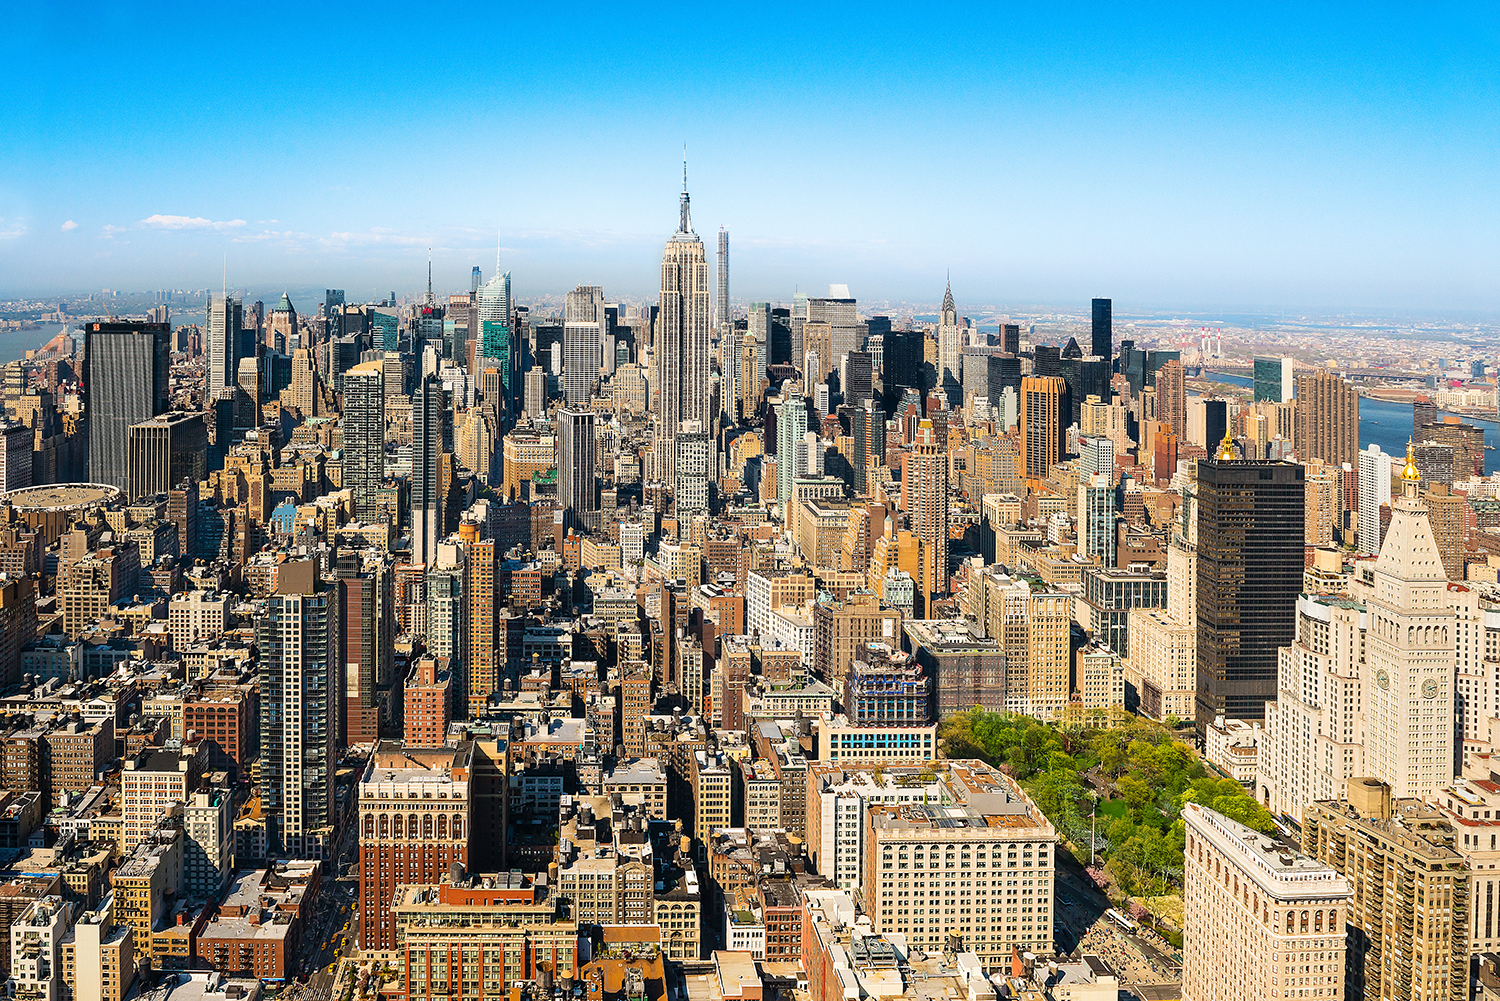 Image Title: NYC Cityscape - Aerial   Mat Sizes: 8x10, 11x14, 16x20  Float Mount Sizes: 12x18, 16x24, 20x30, 24x36, 28x42, 32x48, 36x54, 40x60